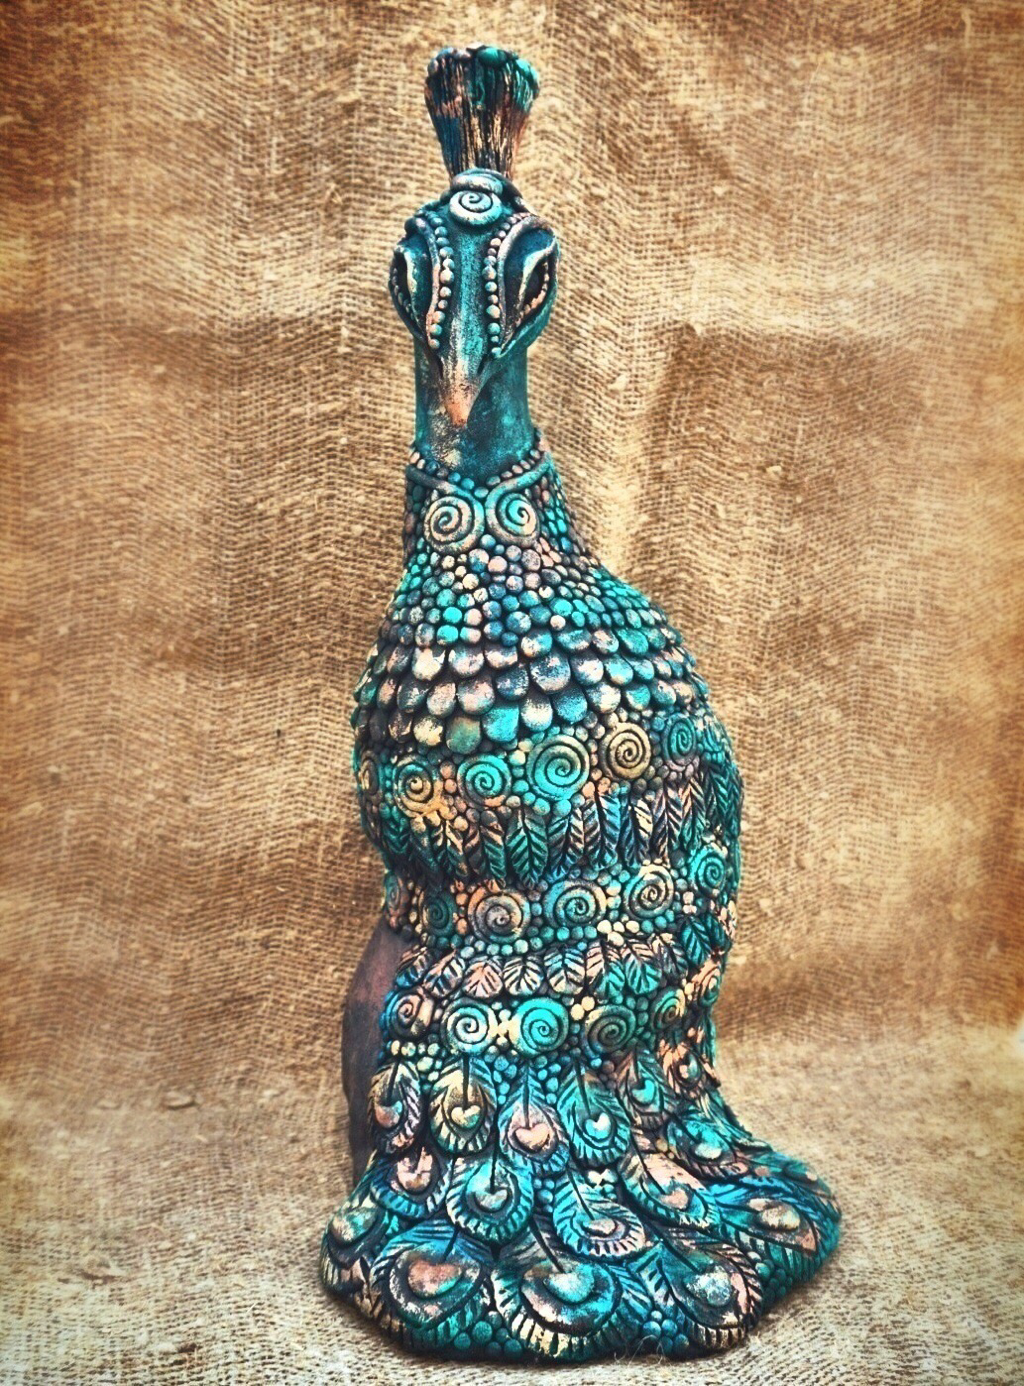 Peacock Sculpture